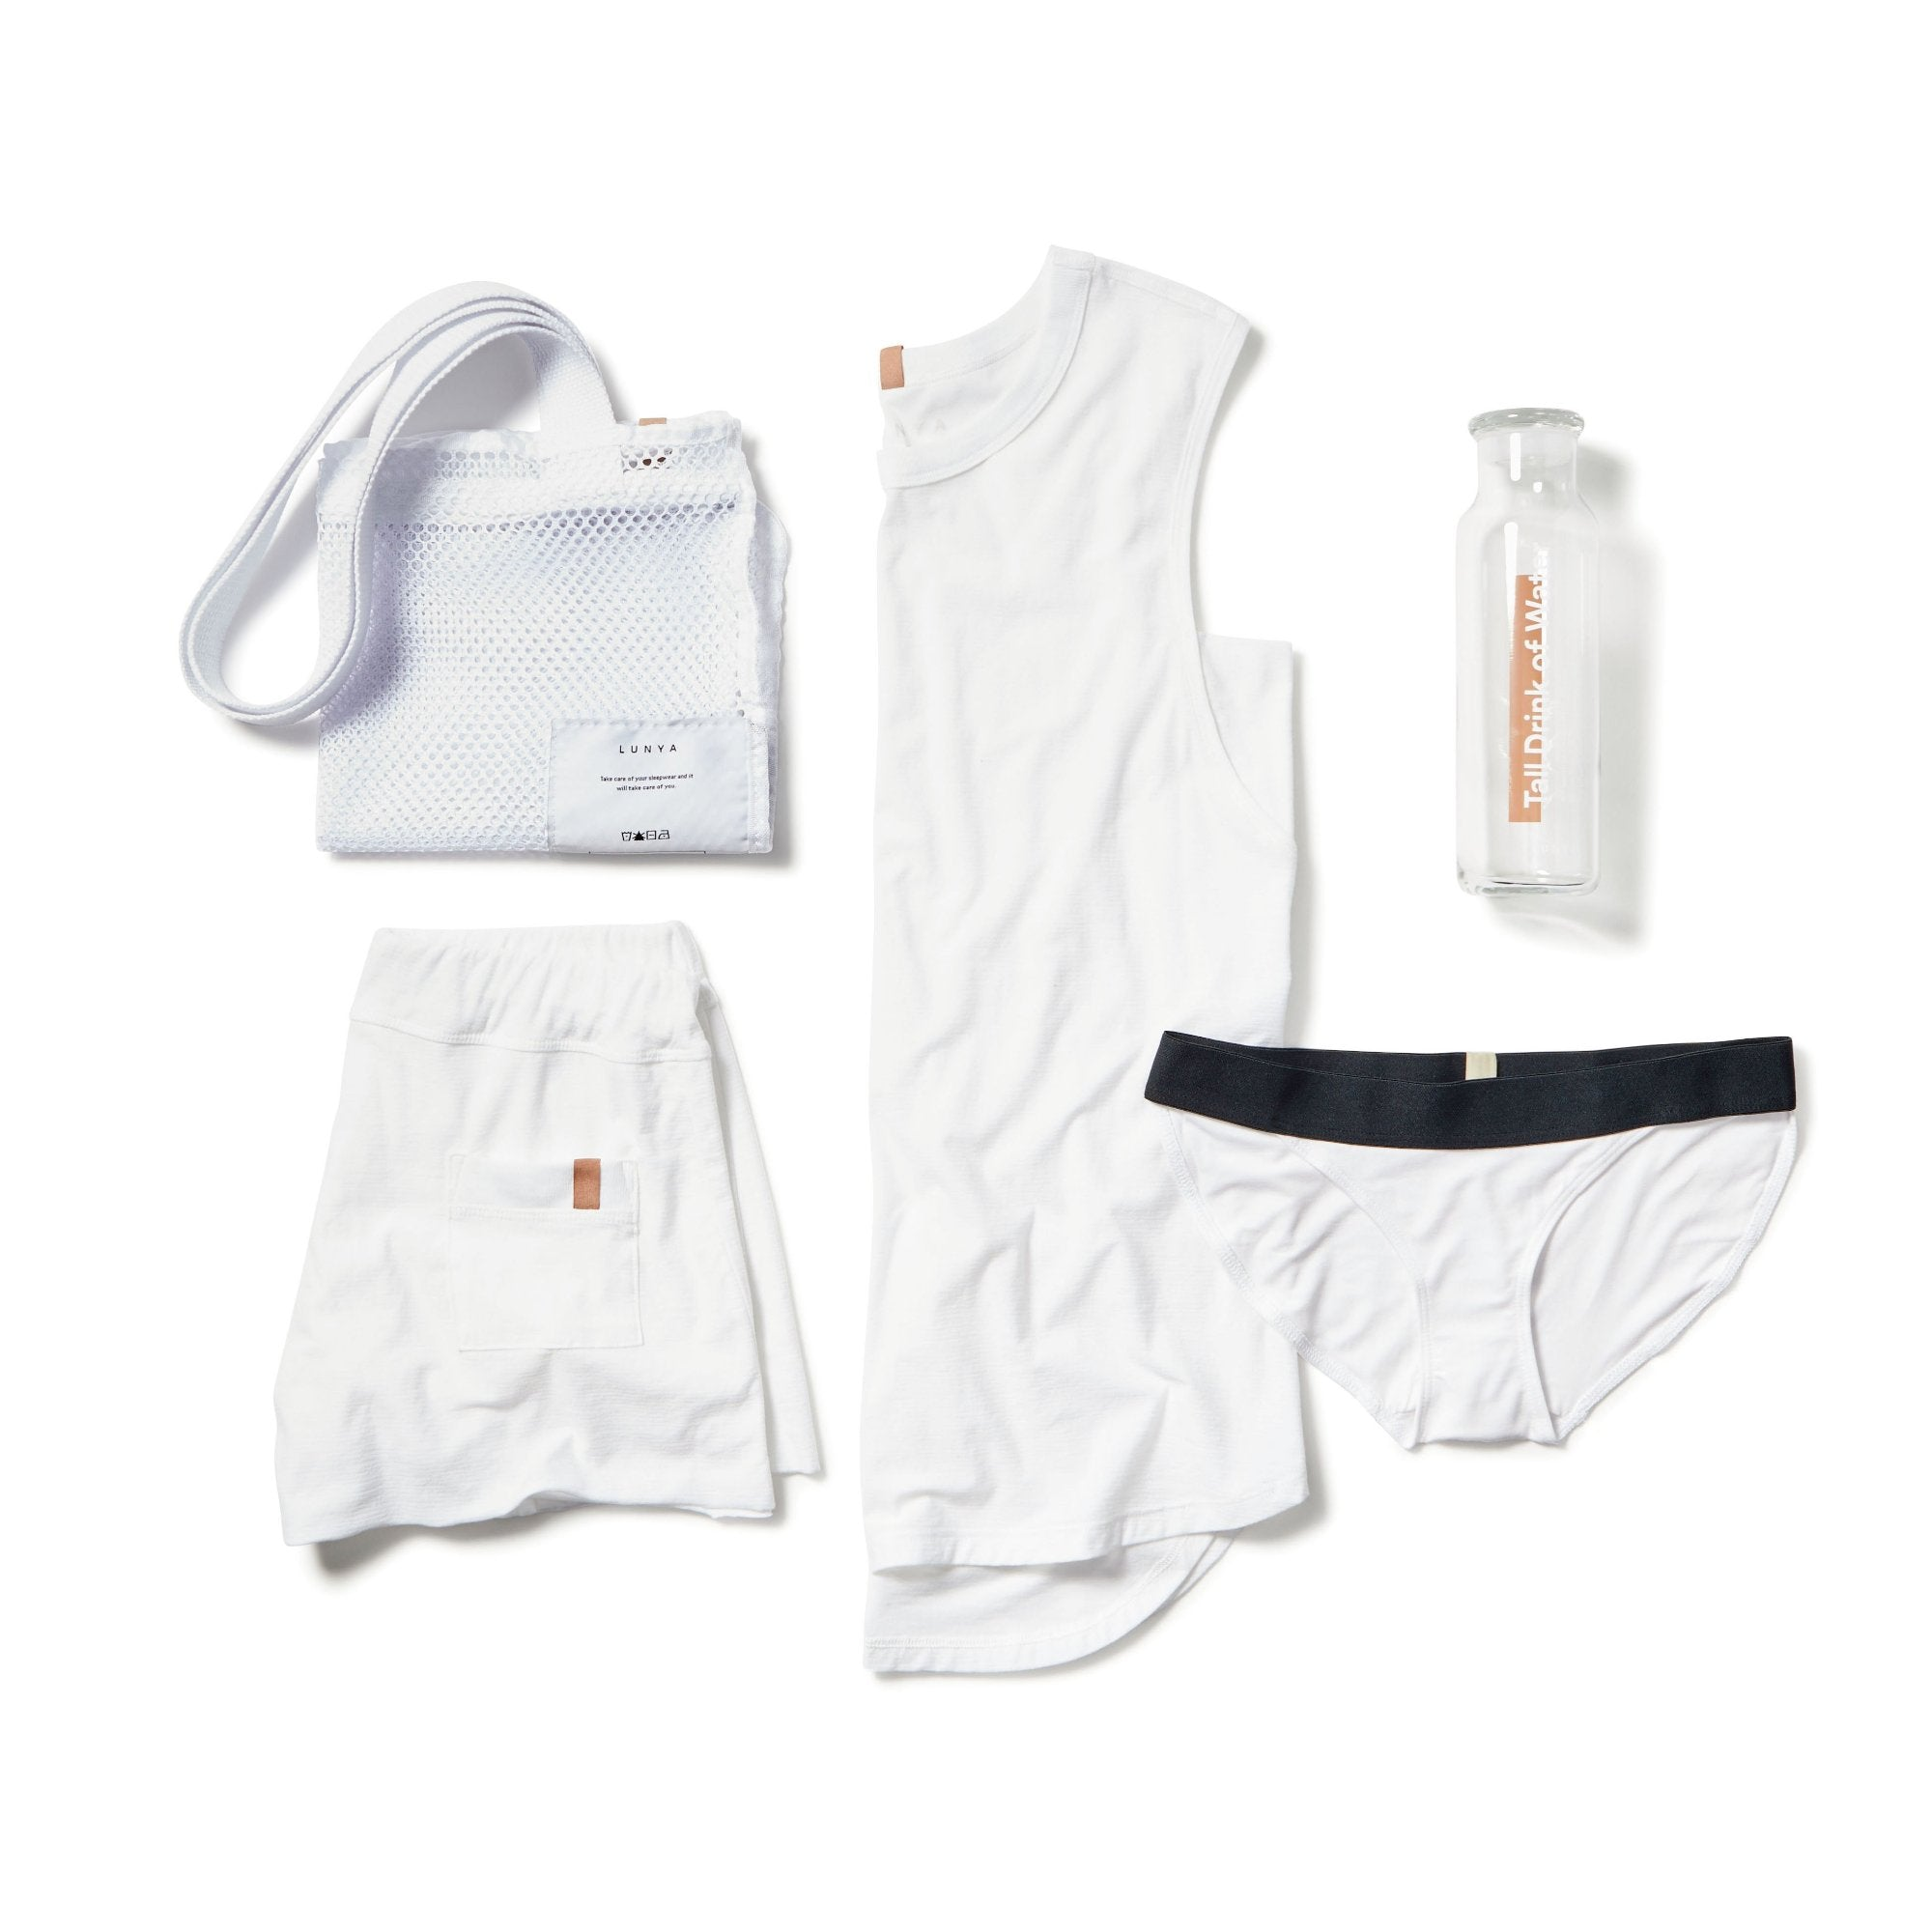 Lunya Sleepwear Cool Kit - #White